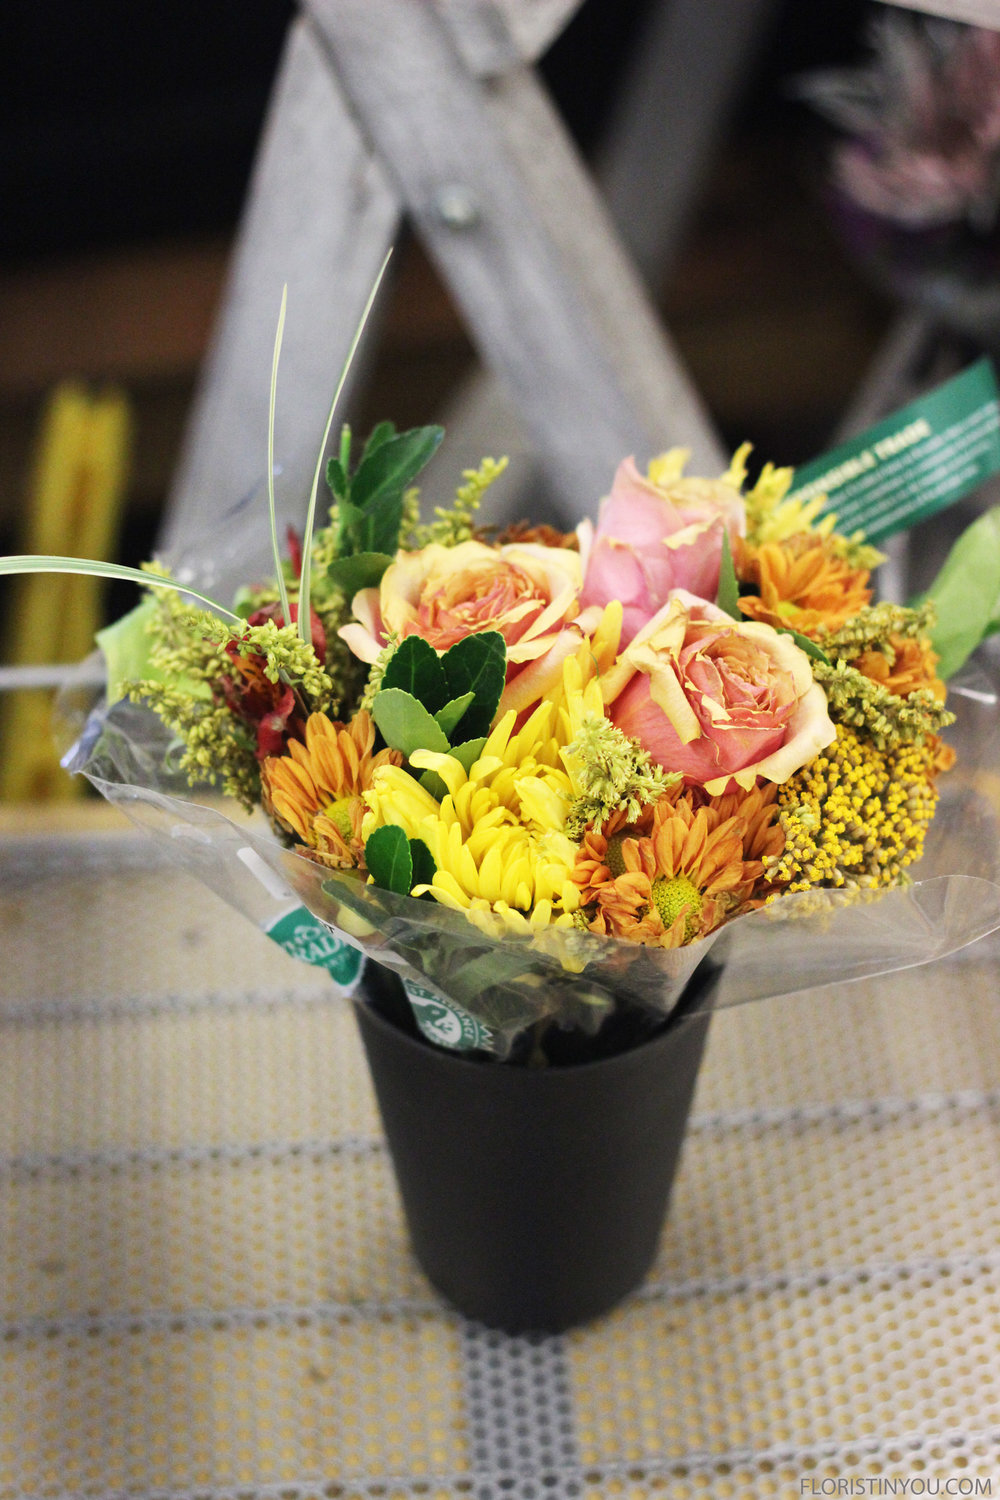 Take the flowers from a Petite Grocery Store Bouquet.